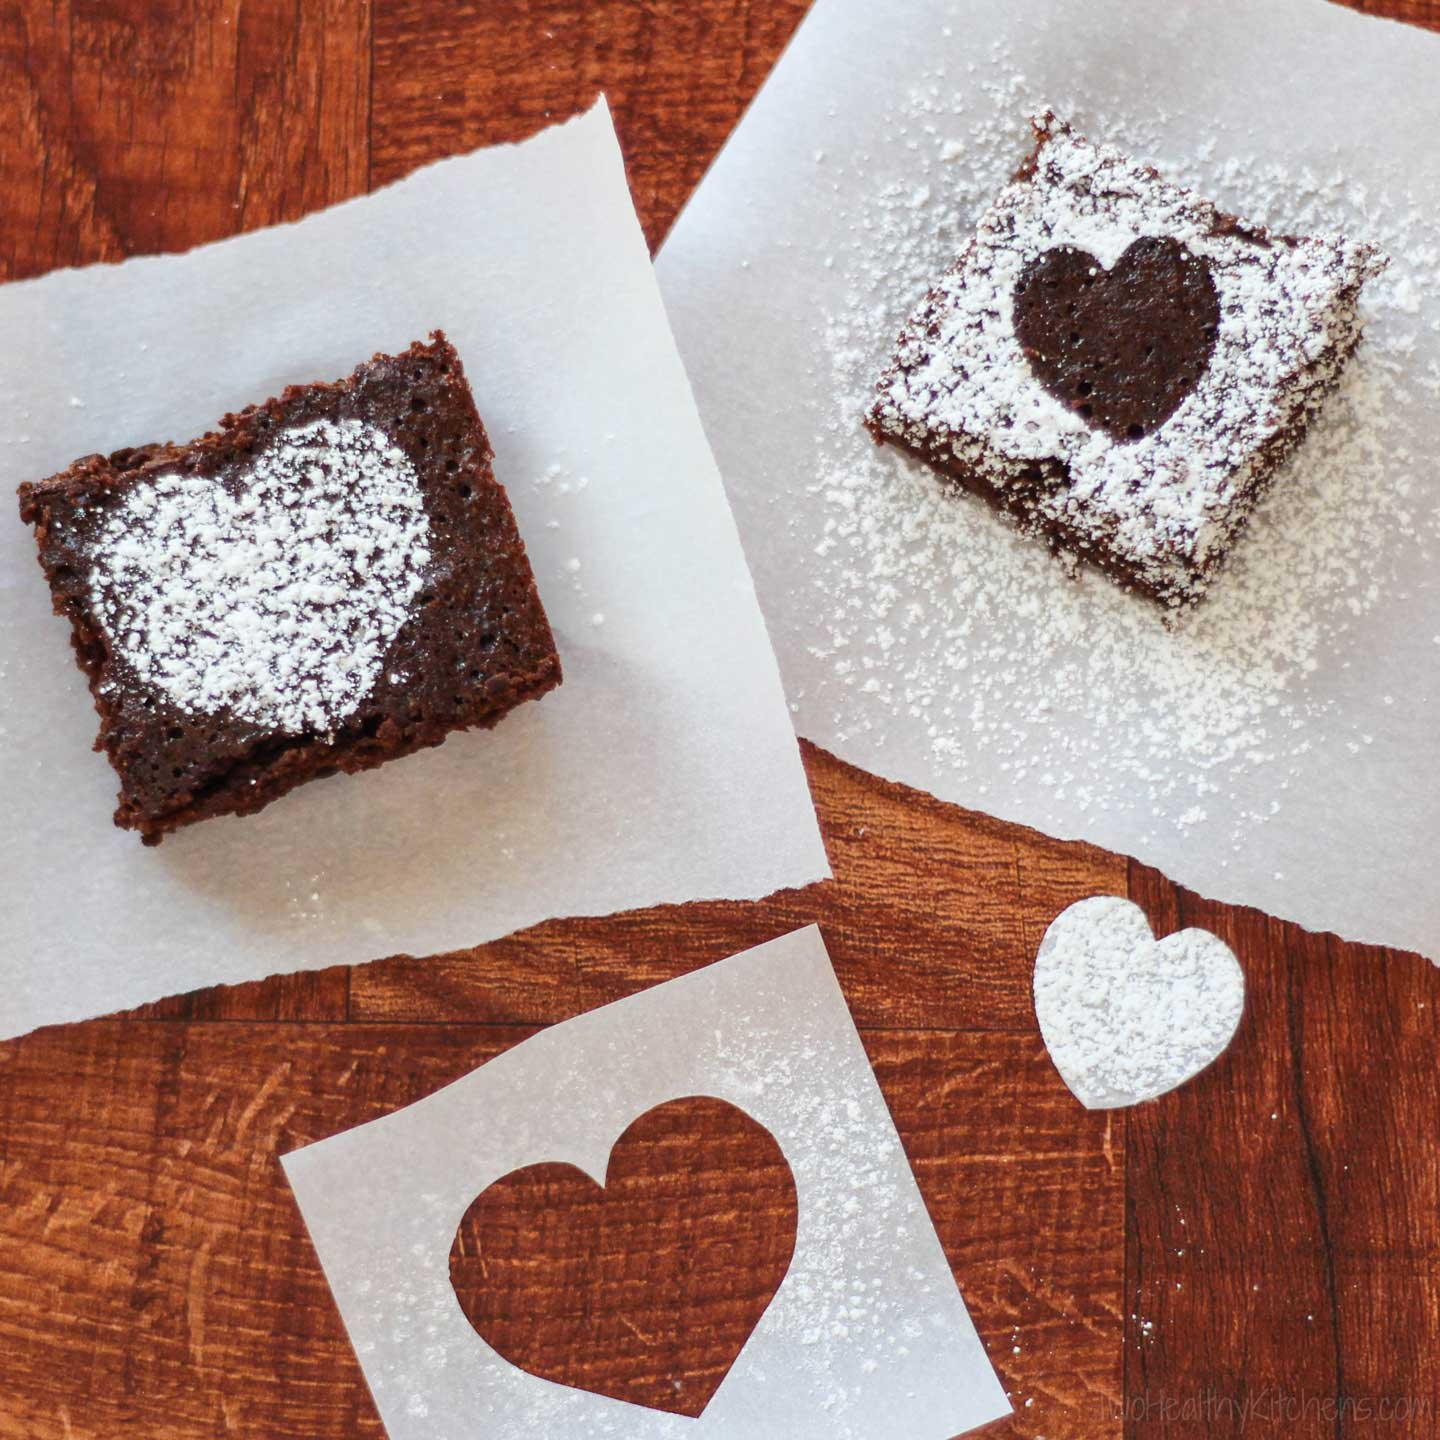 whole-wheat brownies decorated with hearts made from stencils and dusted sugar